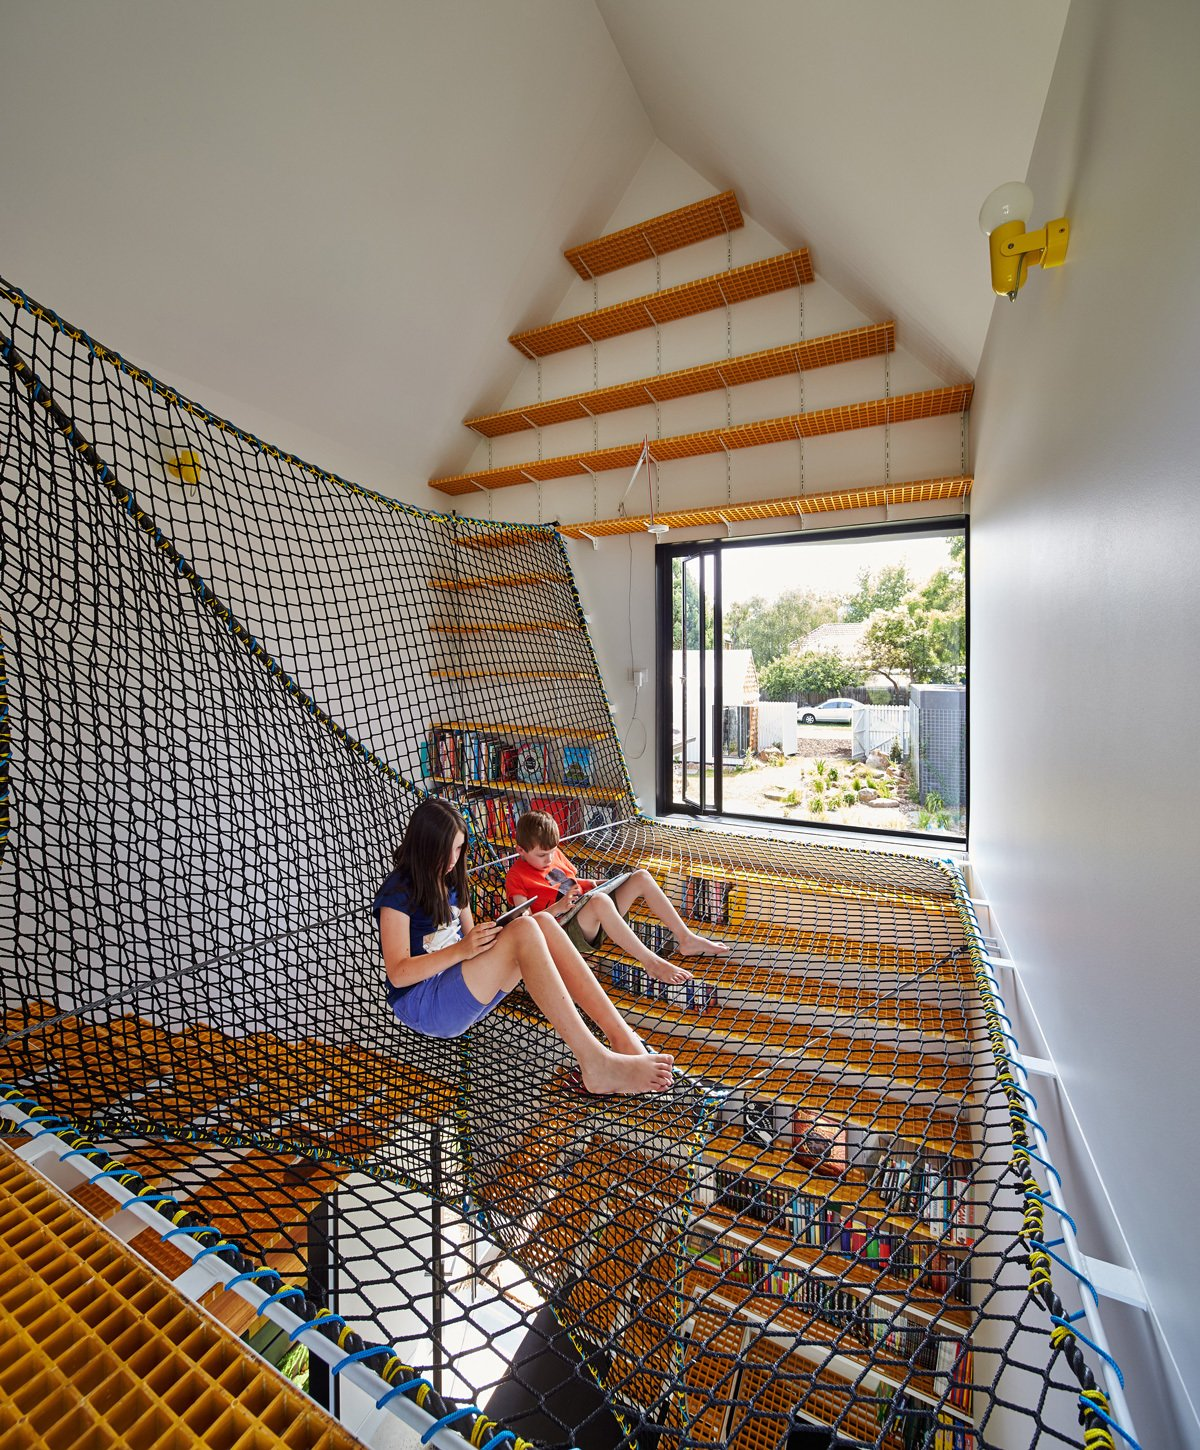 Tower House suspended net playroom